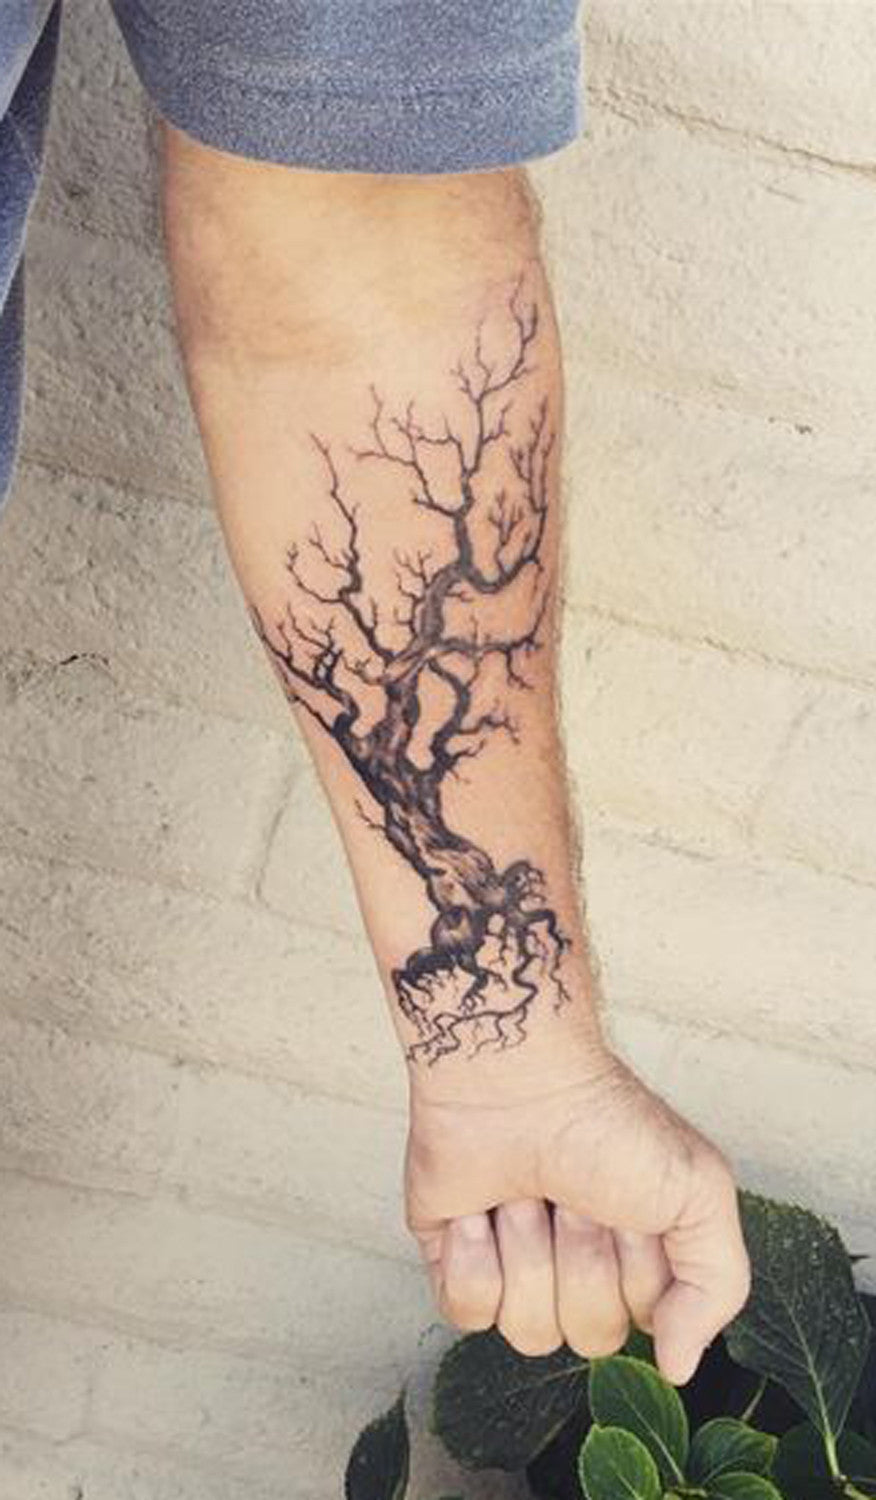 50 beautiful tree tattoo ideas for women mybodiart. Black Bedroom Furniture Sets. Home Design Ideas